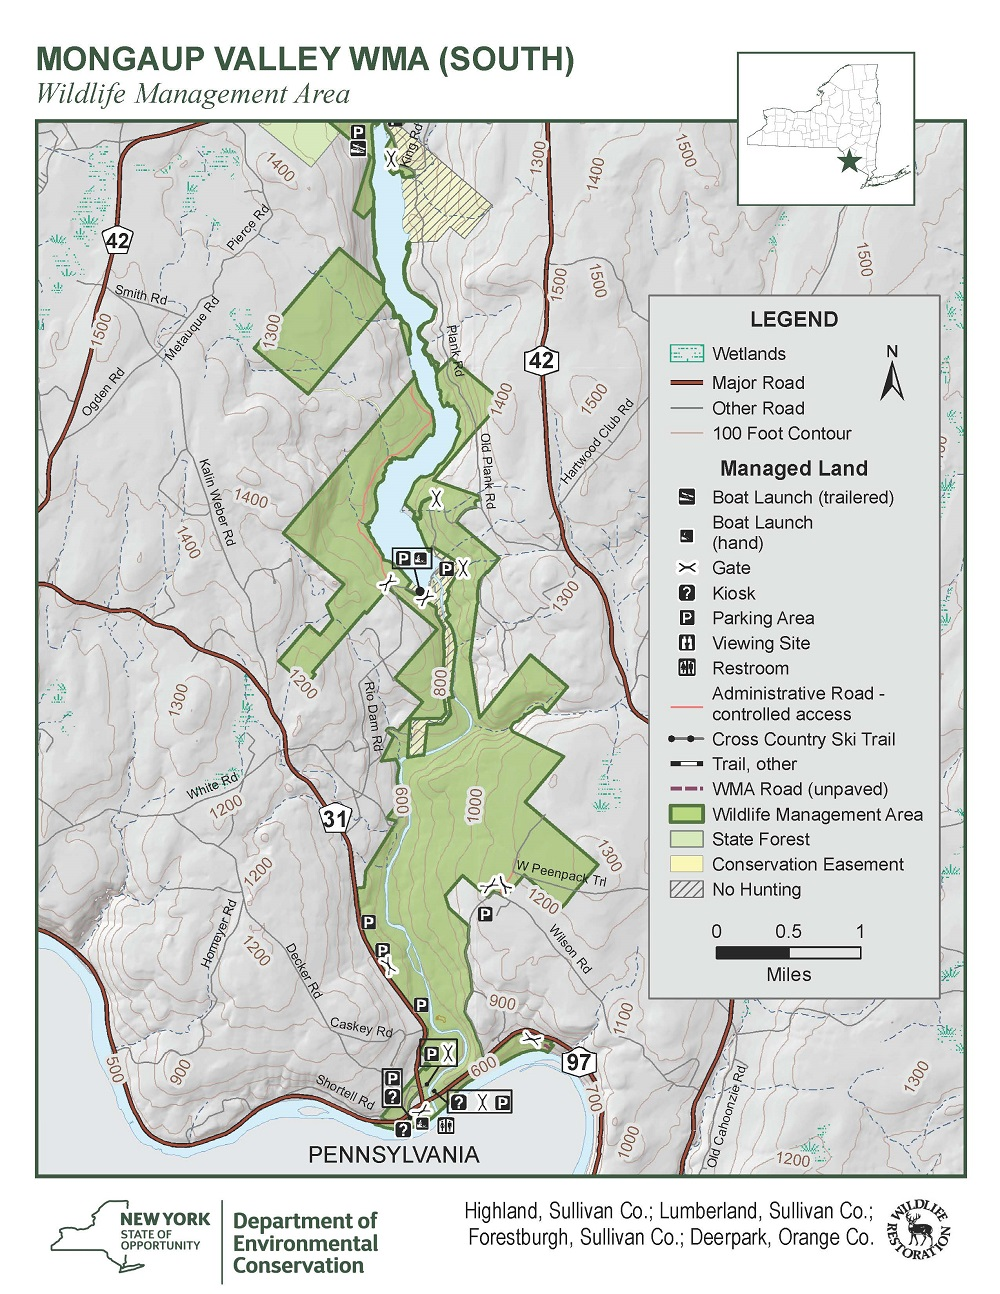 Mongaup Valley Wildlife Management Area Map (South)